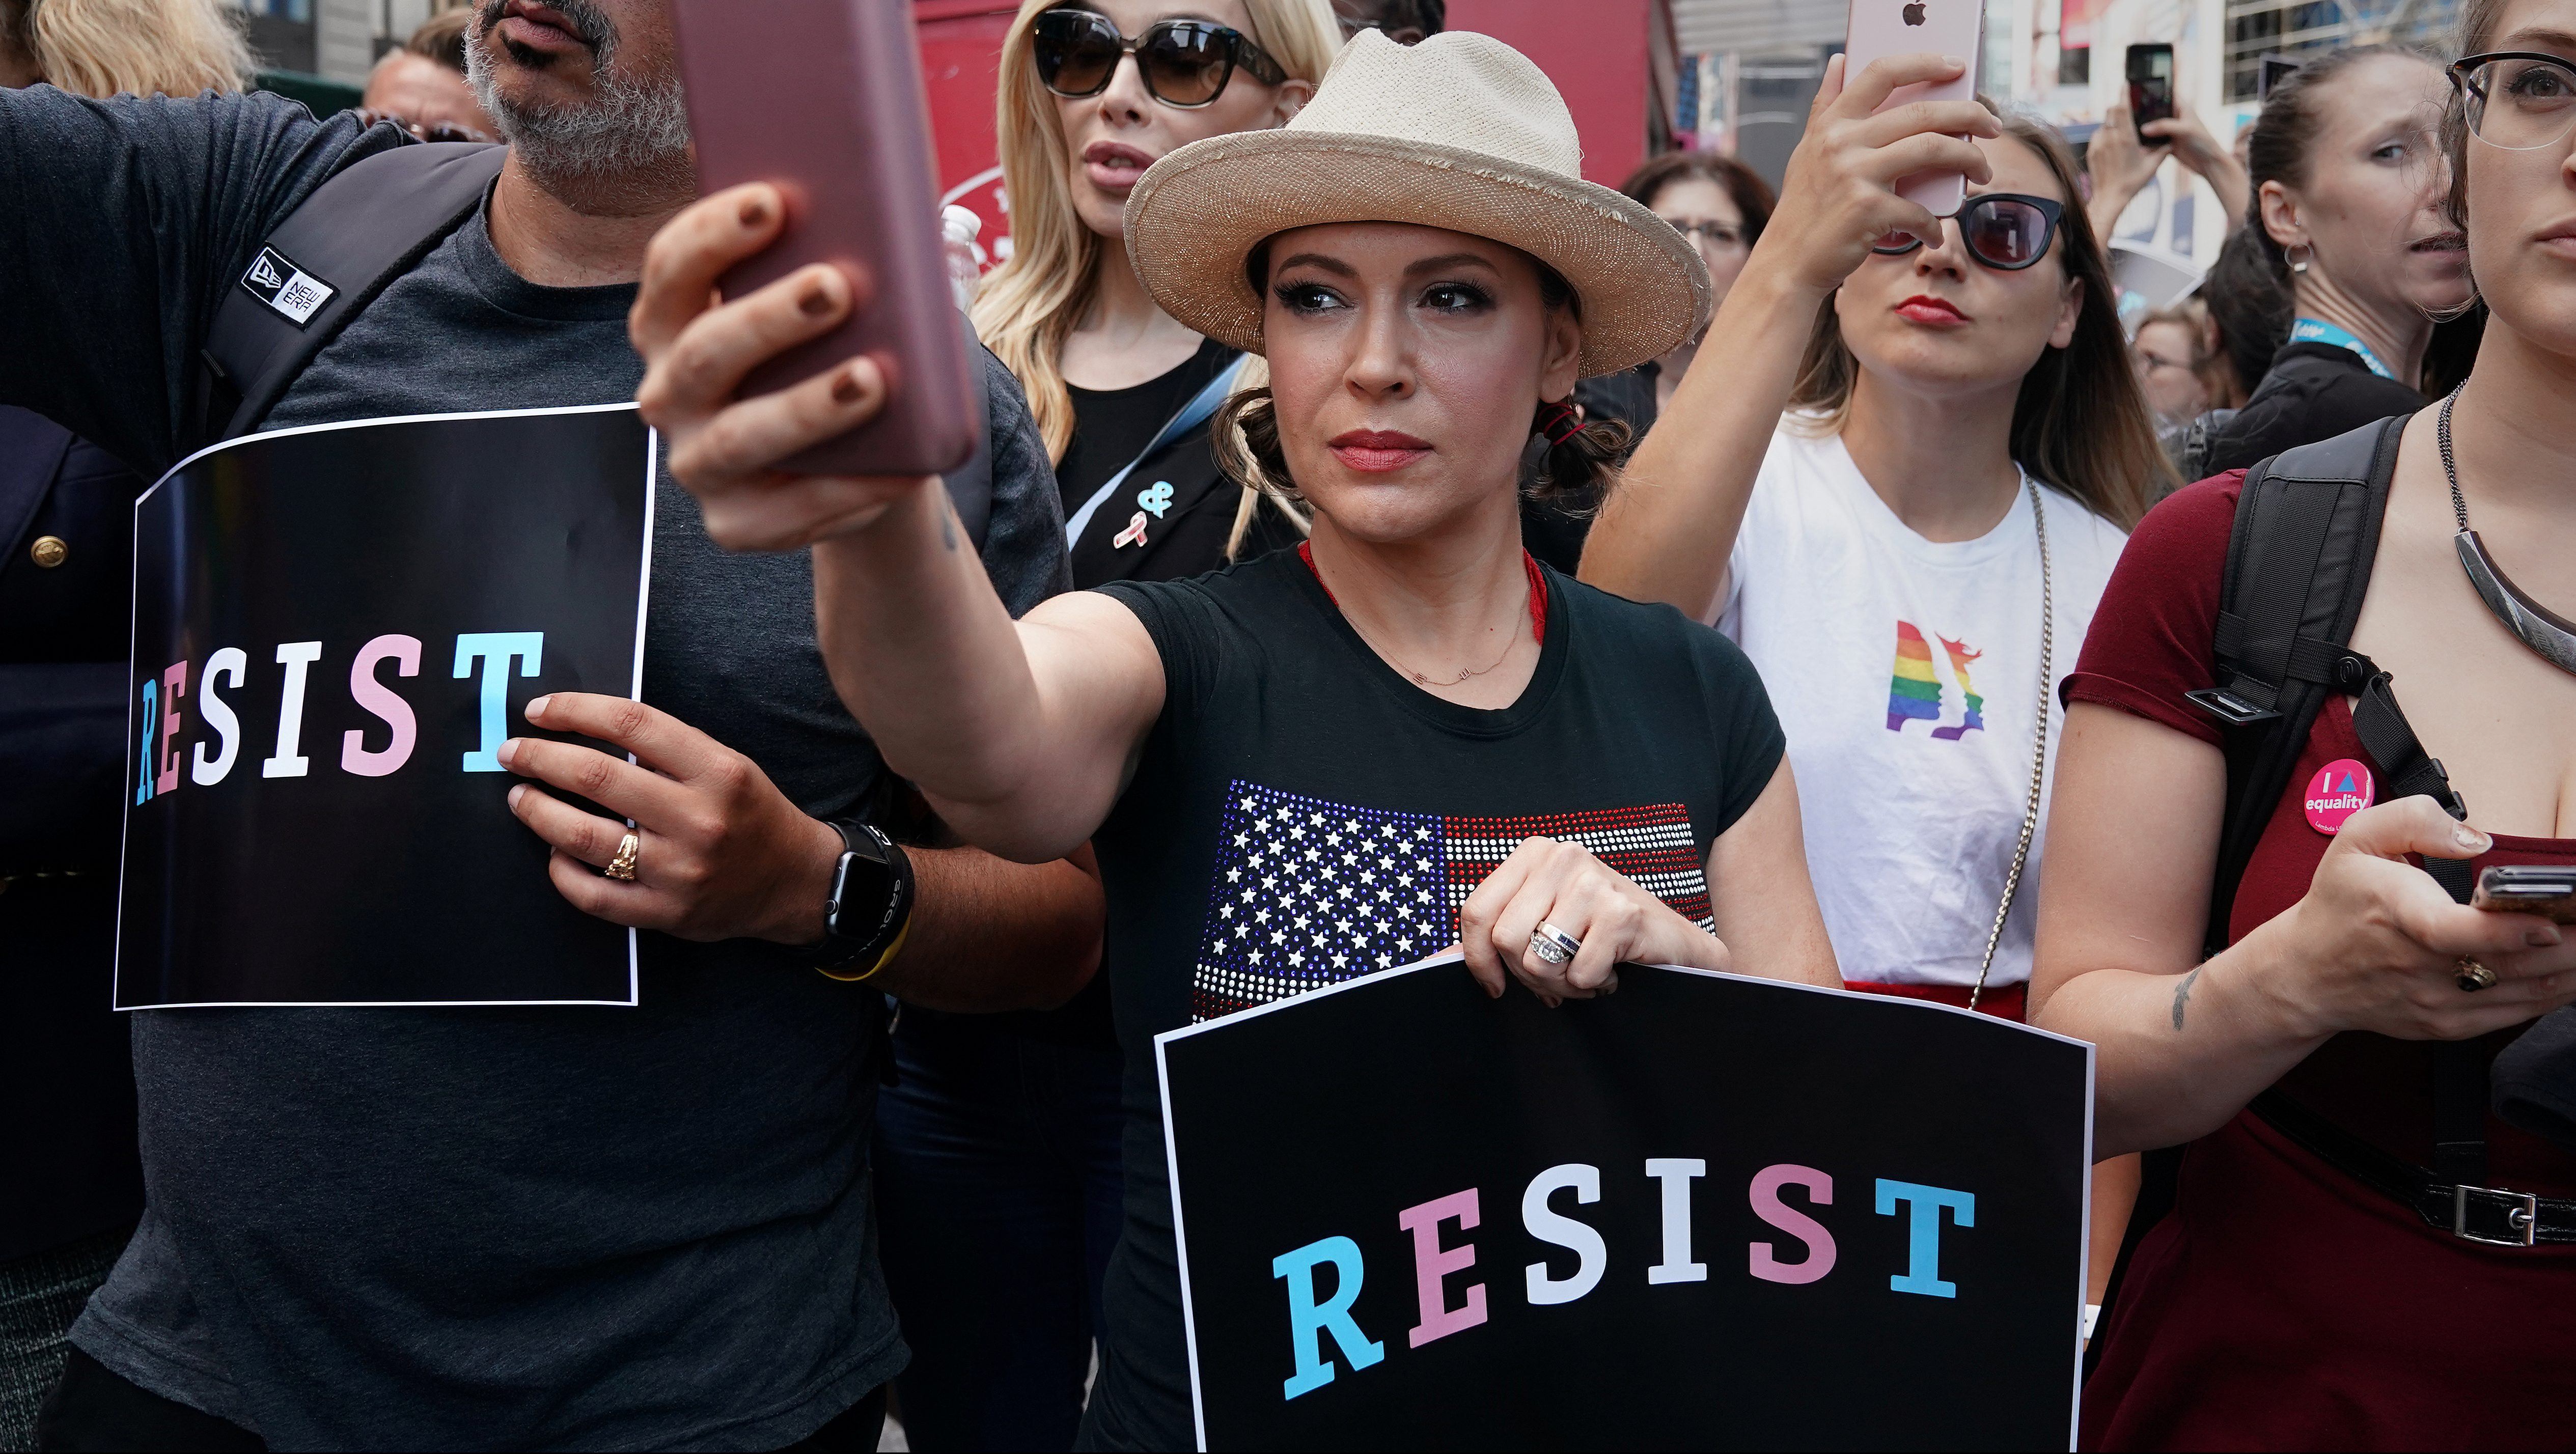 Actress Alyssa Milano attends a protest against U.S. President Donald Trump's announcement that he plans to reinstate a ban on transgender individuals from serving in any capacity in the U.S. military, in Times Square, in New York City, New York, U.S., July 26, 2017.